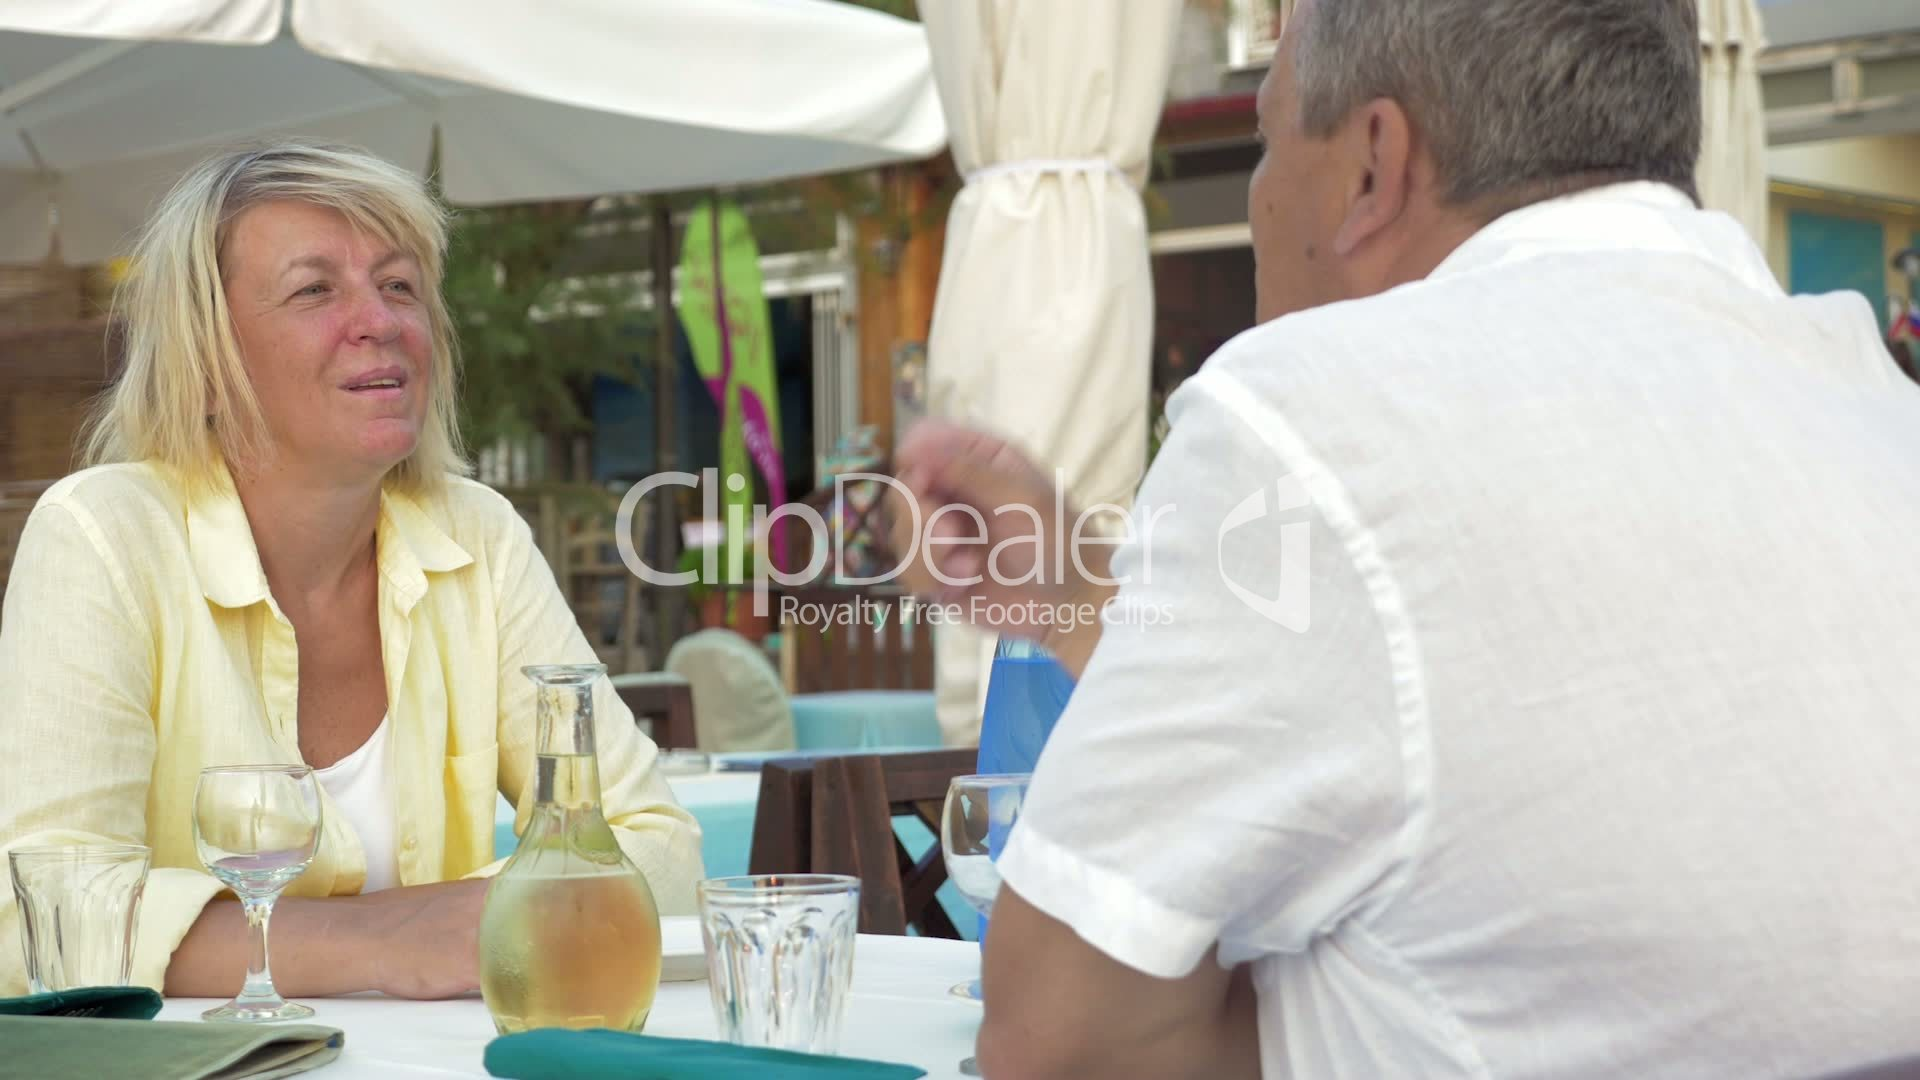 Man and woman sitting in restaurant, talking and laughing